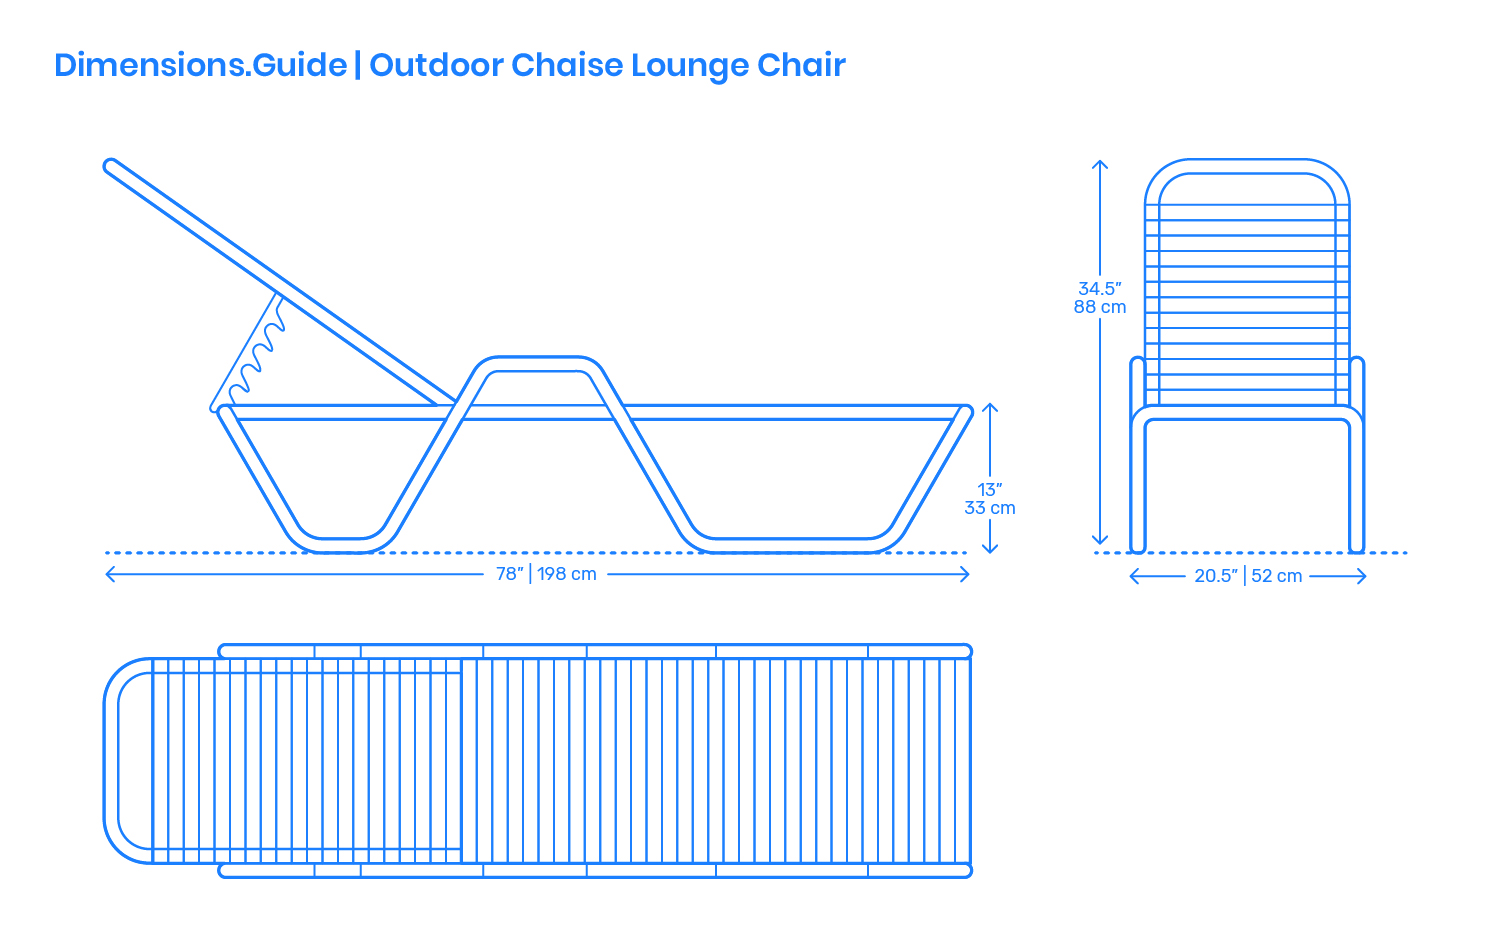 Sunbathing Chairs Outdoor Chaise Lounge Chair Dimensions Drawings Dimensions Guide